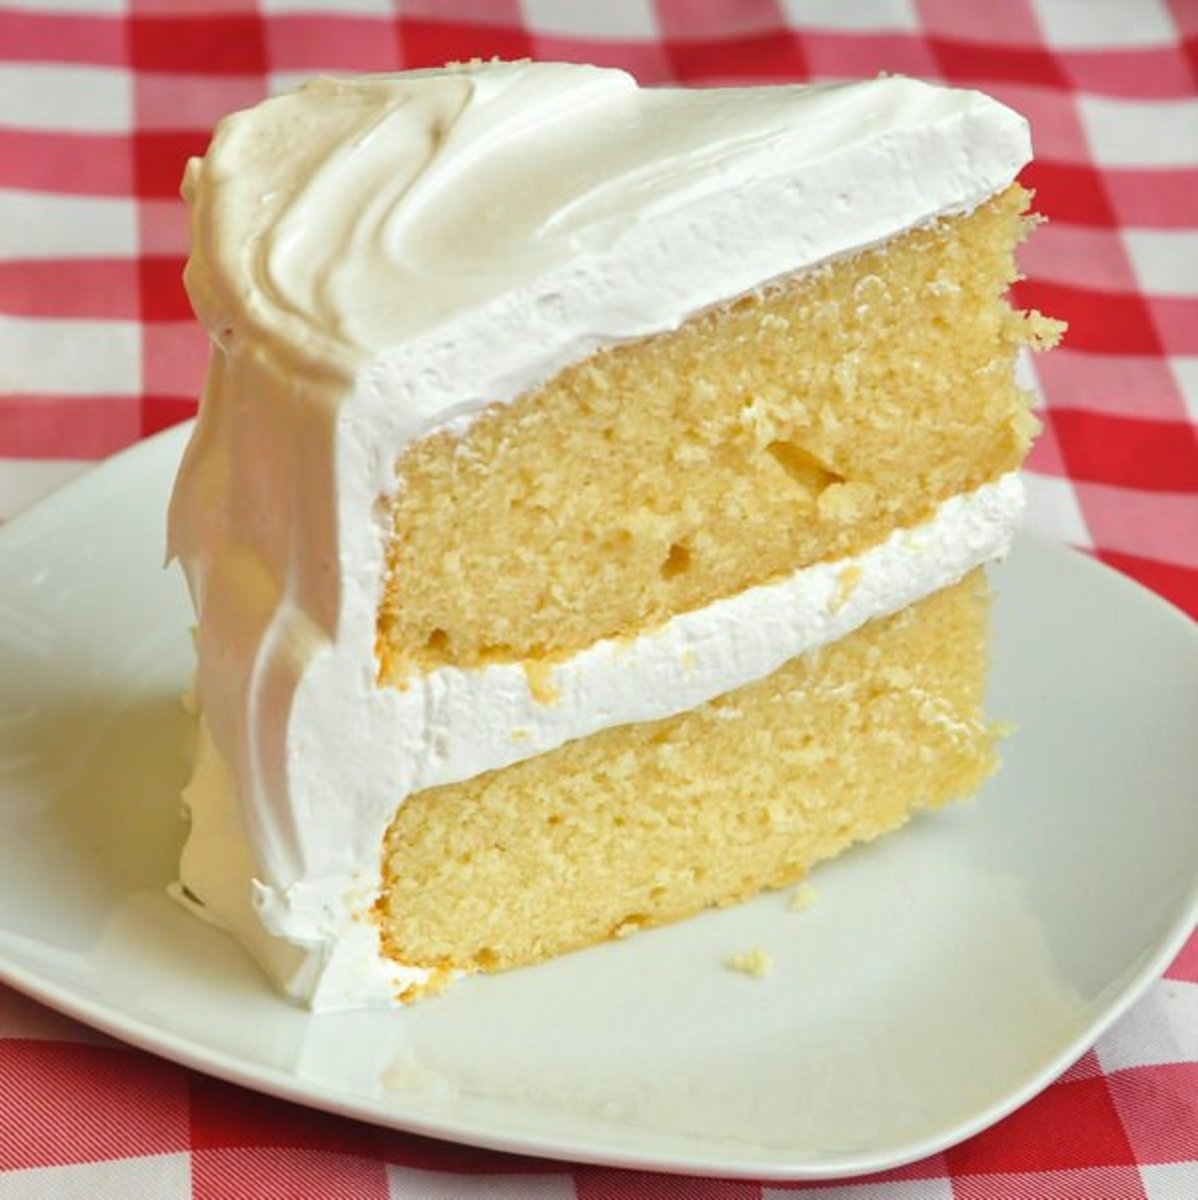 Vanilla cake with marshmallow frosting.